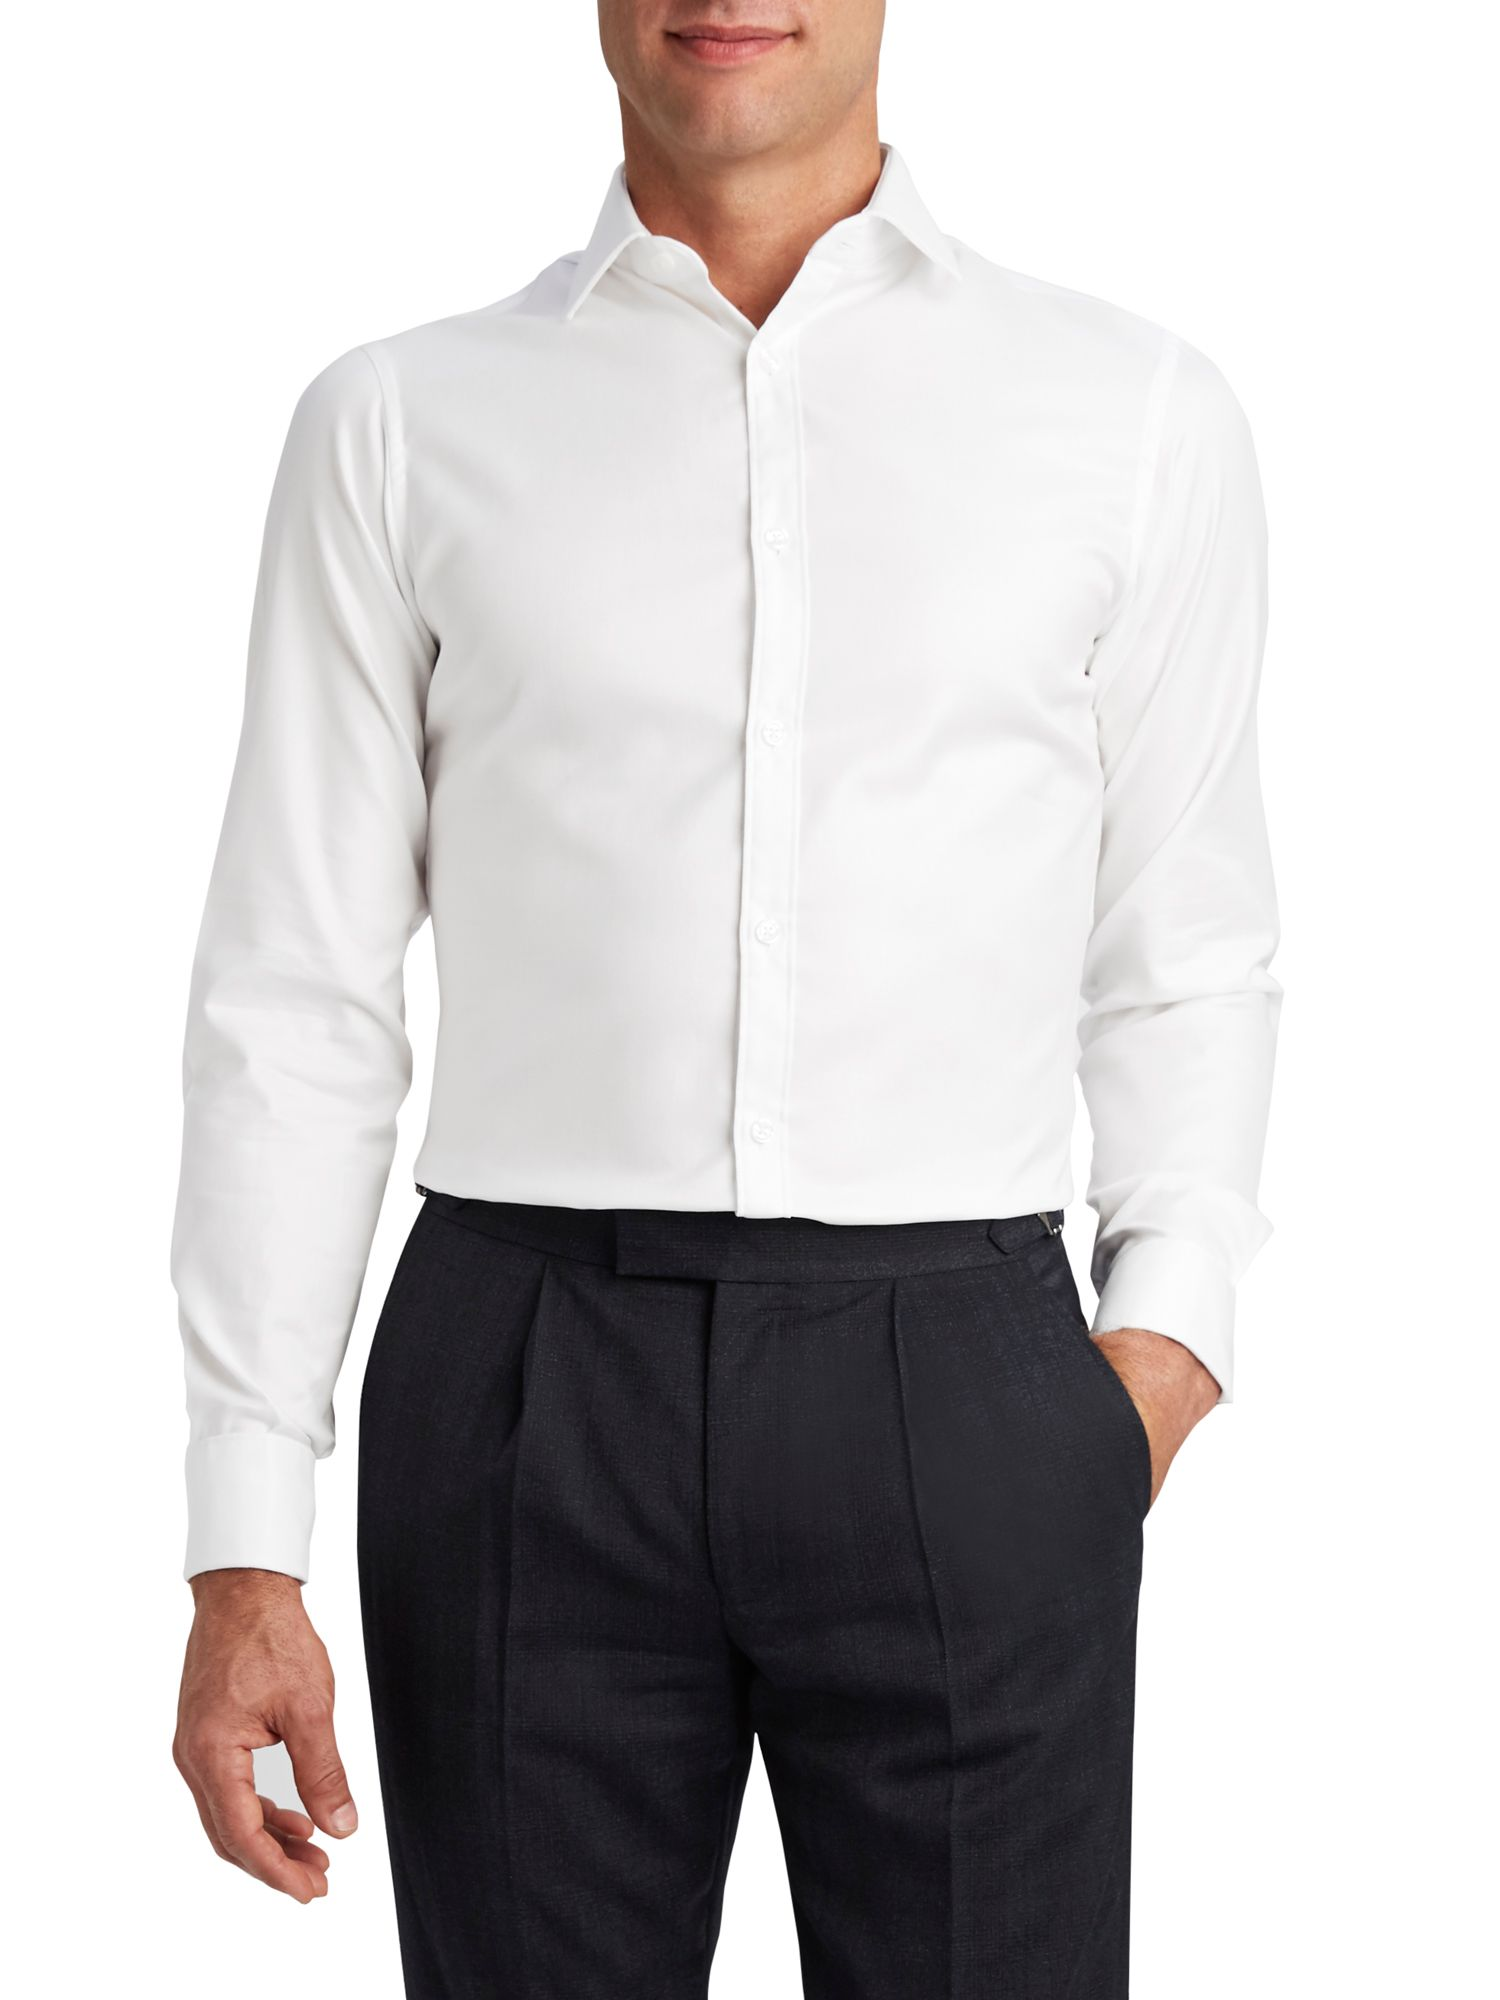 Tm Lewin Super Fitted Shirts Review Summer Cook